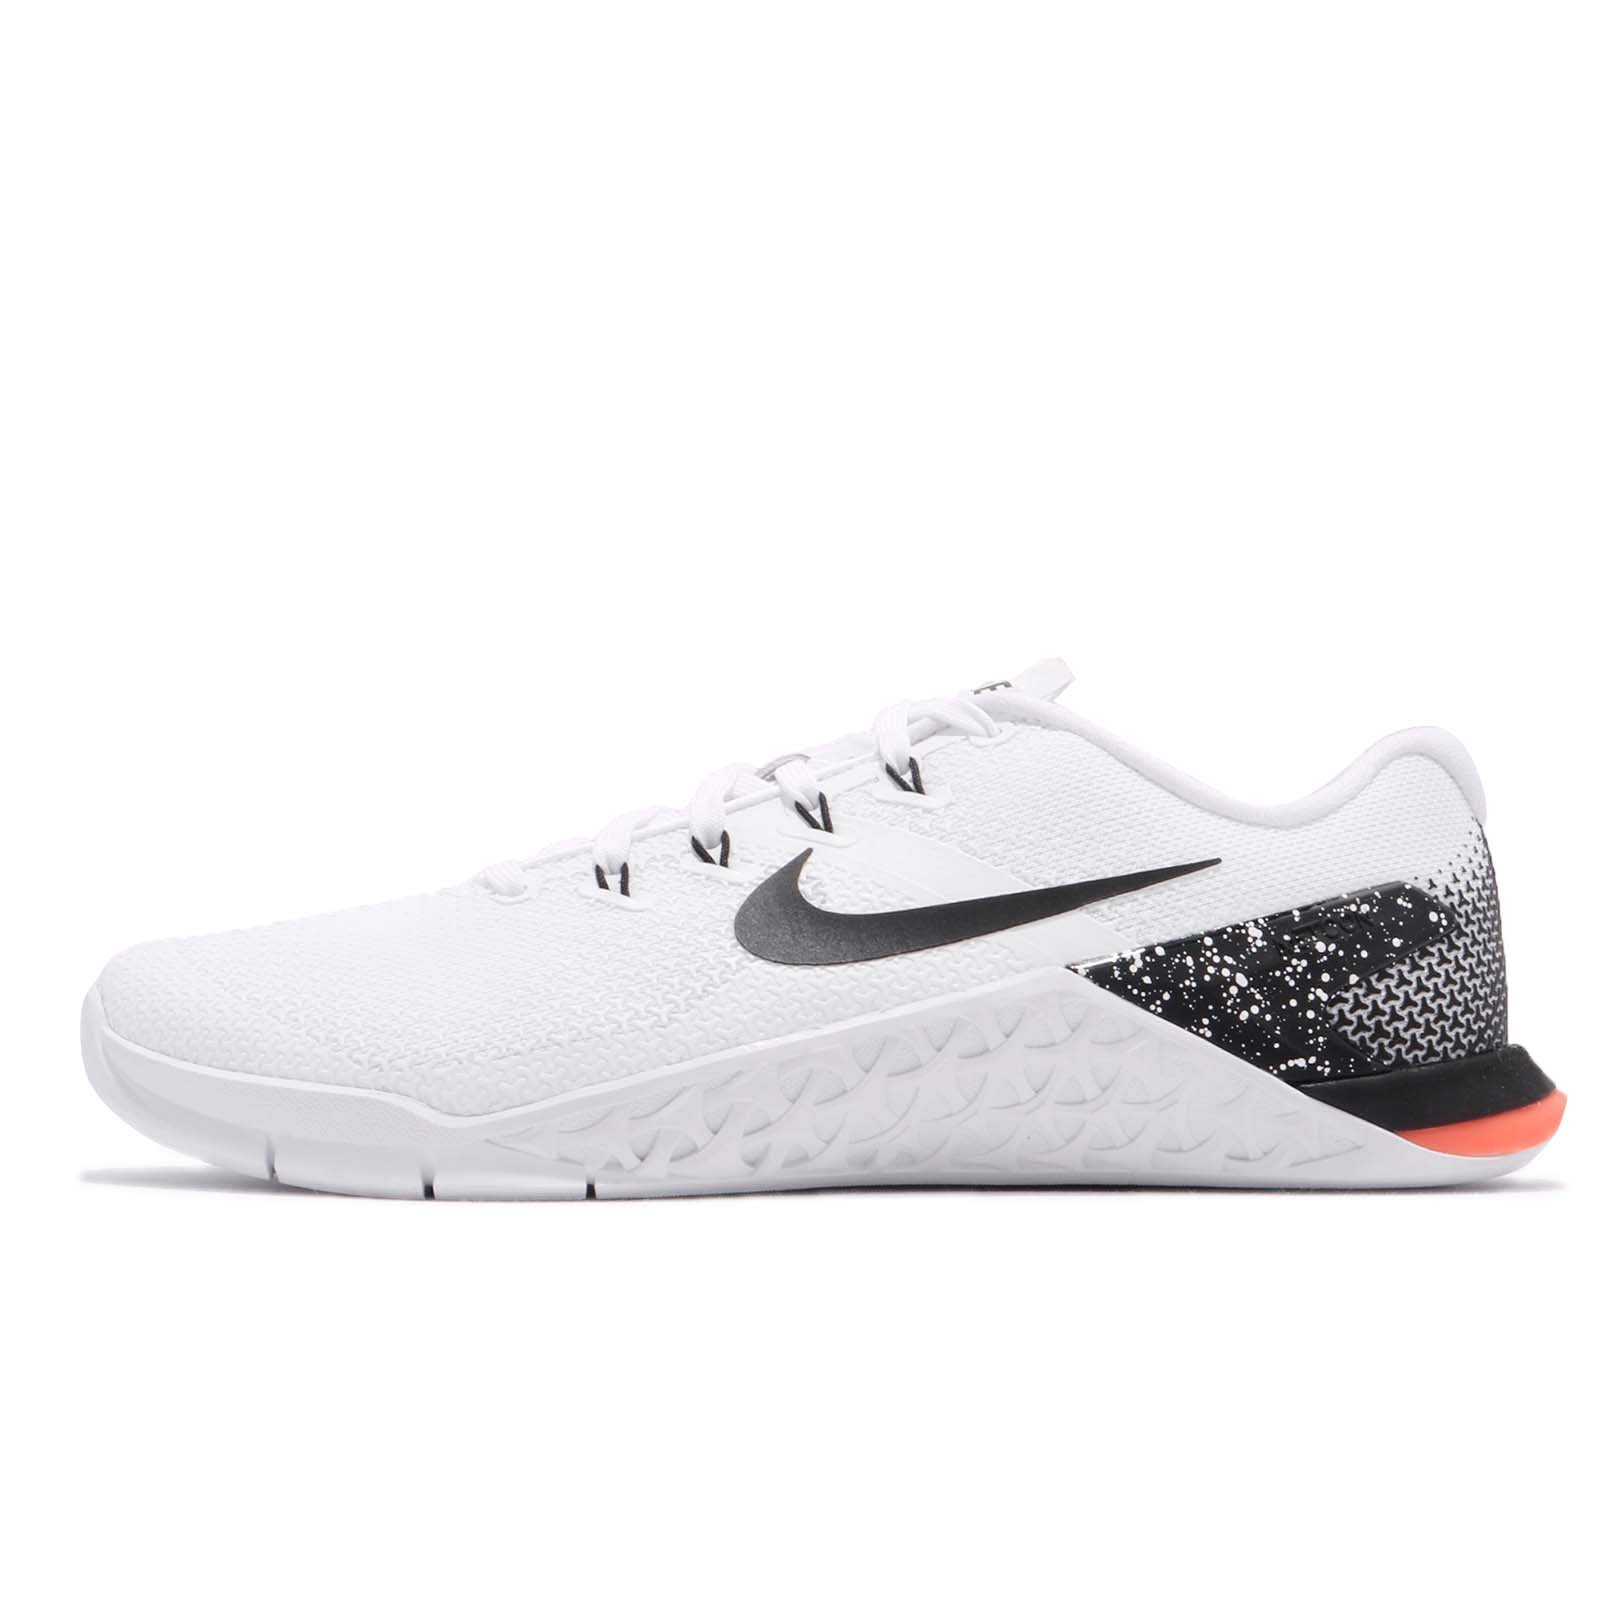 118b5529027 Galleon - NIKE Women s Metcon 4 Training Shoes (9.5